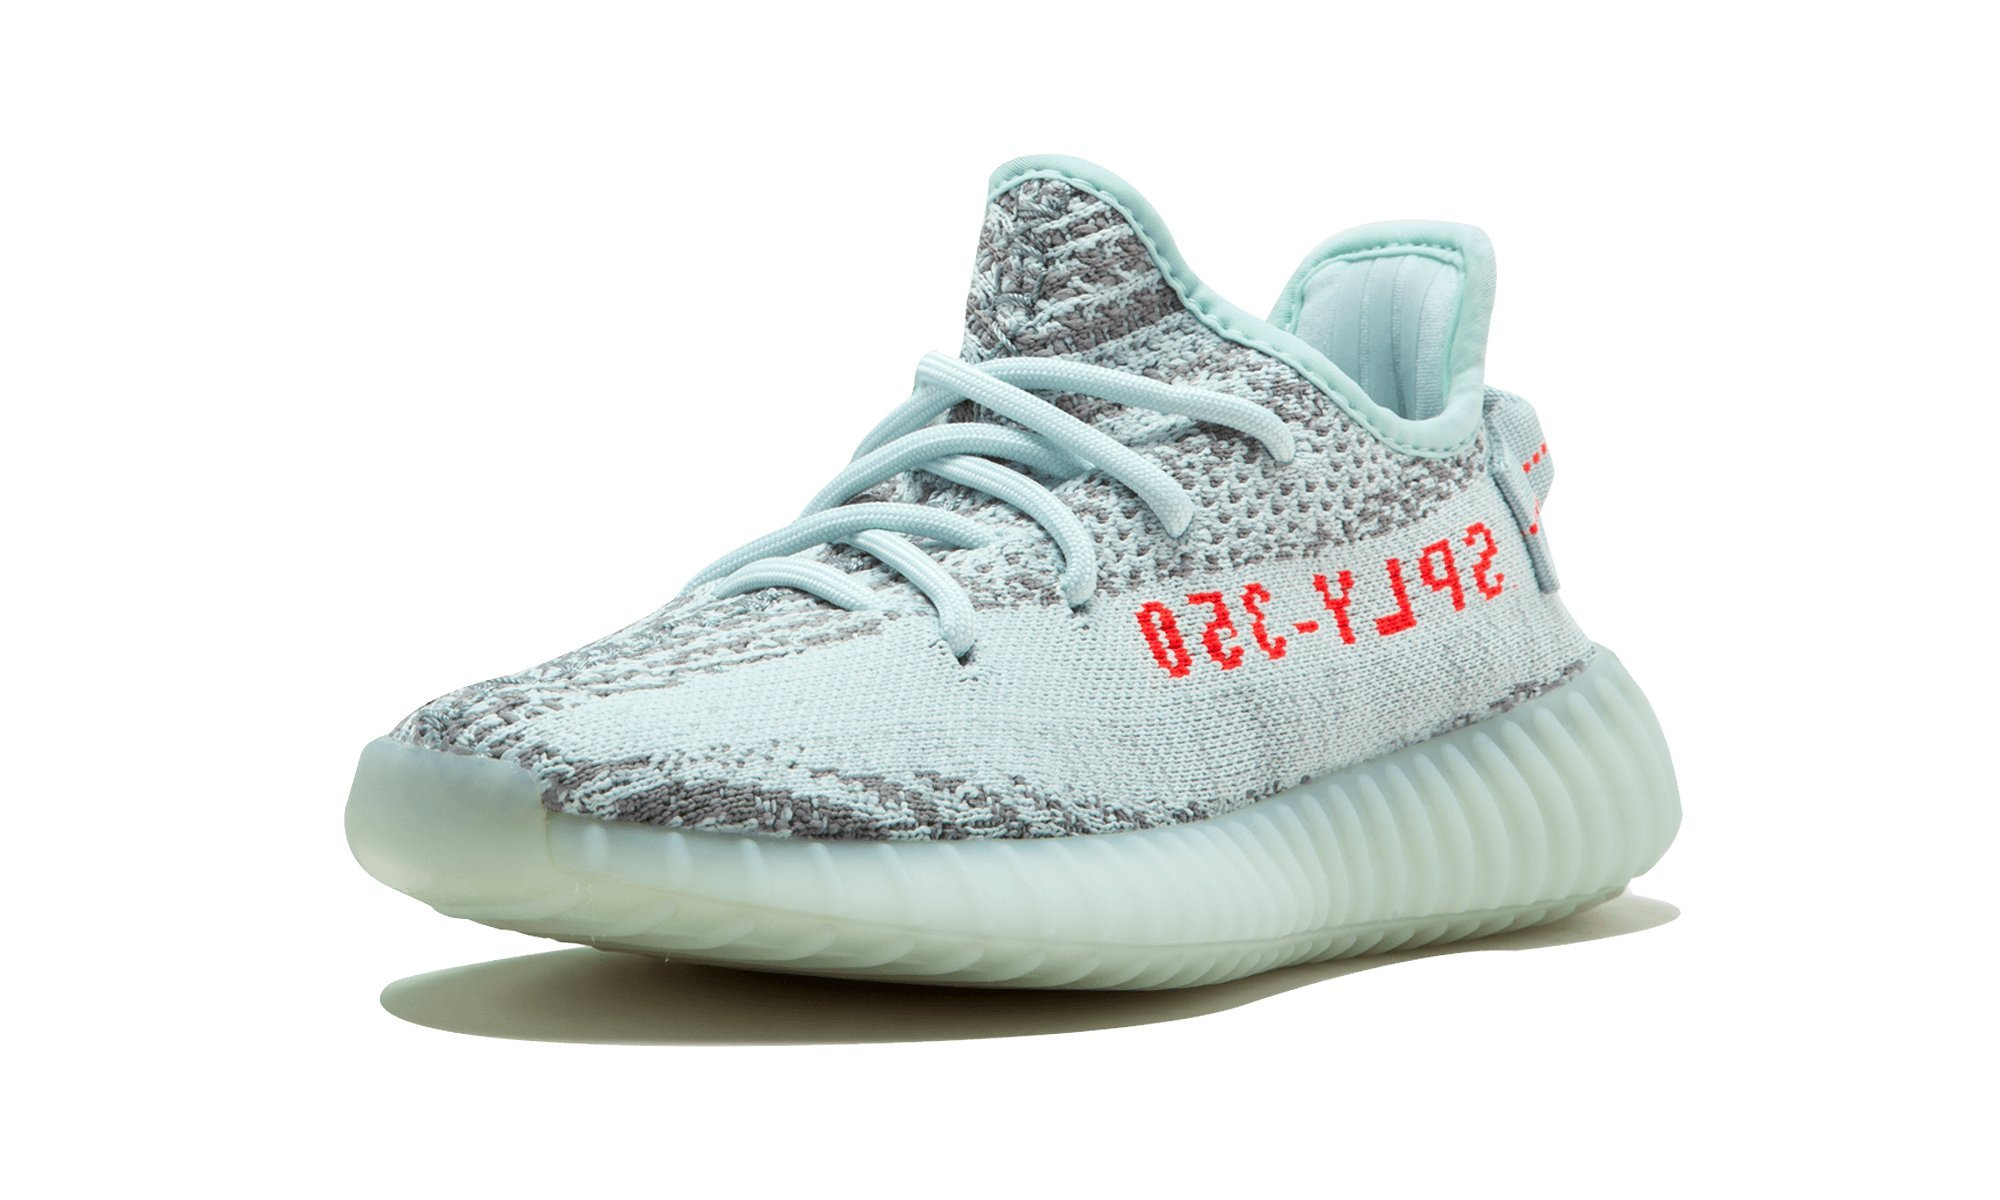 outlet store 4f4bd 8992d adidas Yeezy Boost 350 V2 - B37571